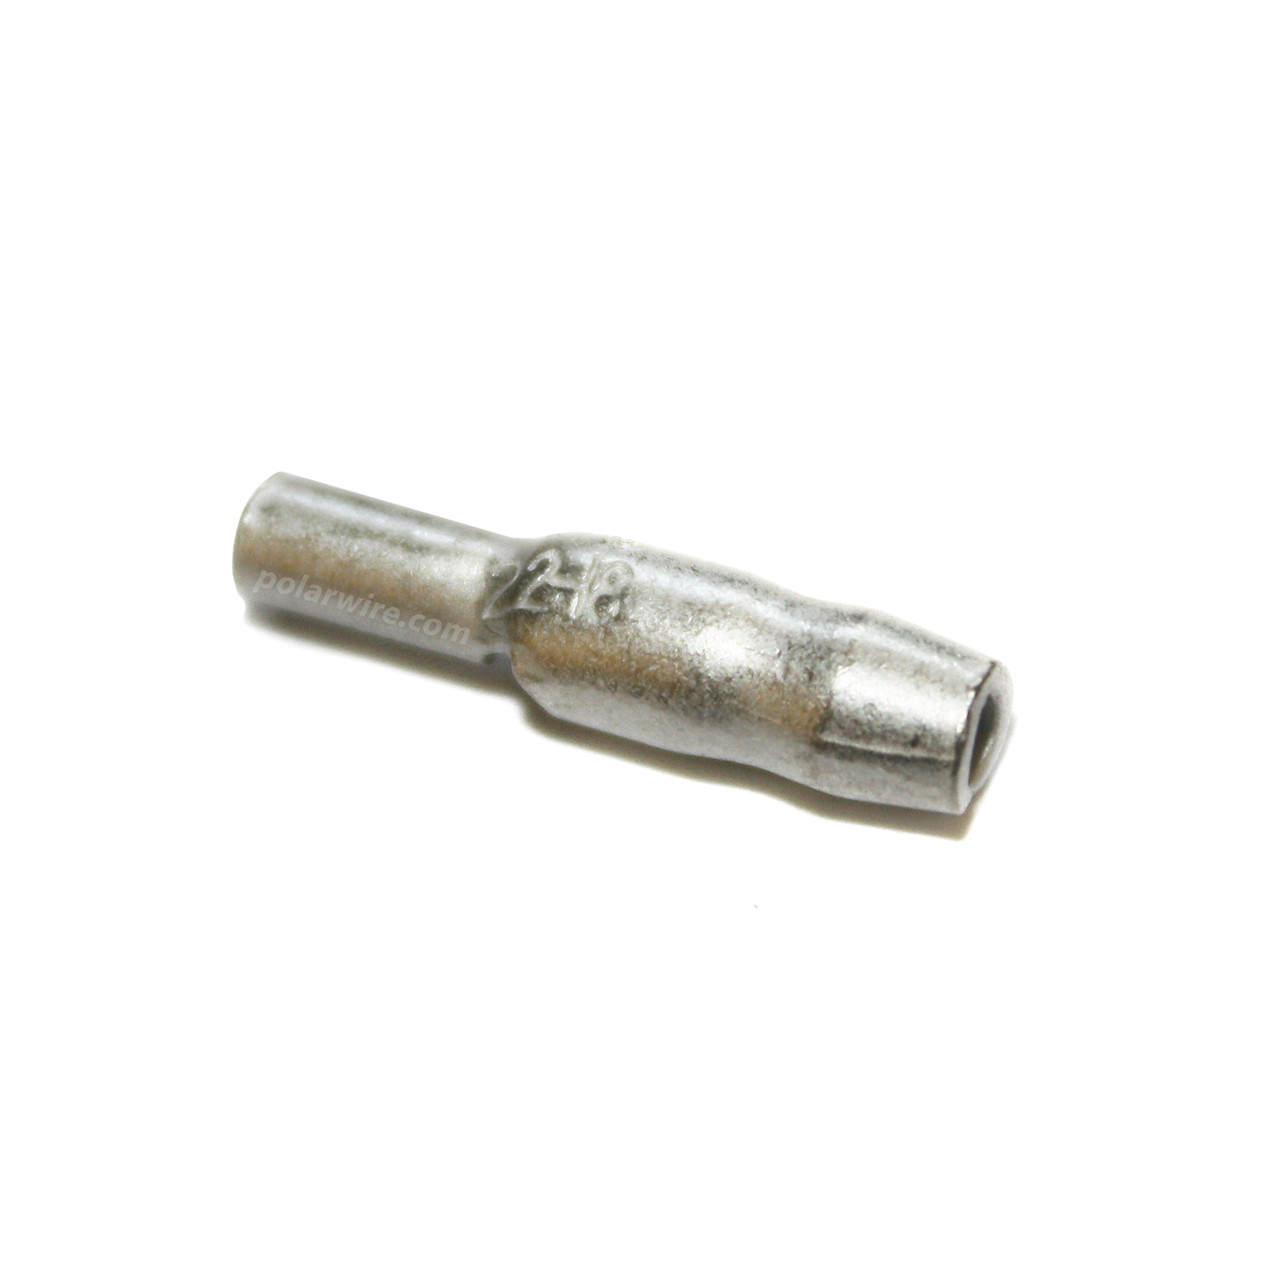 Non-Insulated Male Snap Terminal, 22-18 gauge, .176 diameter.